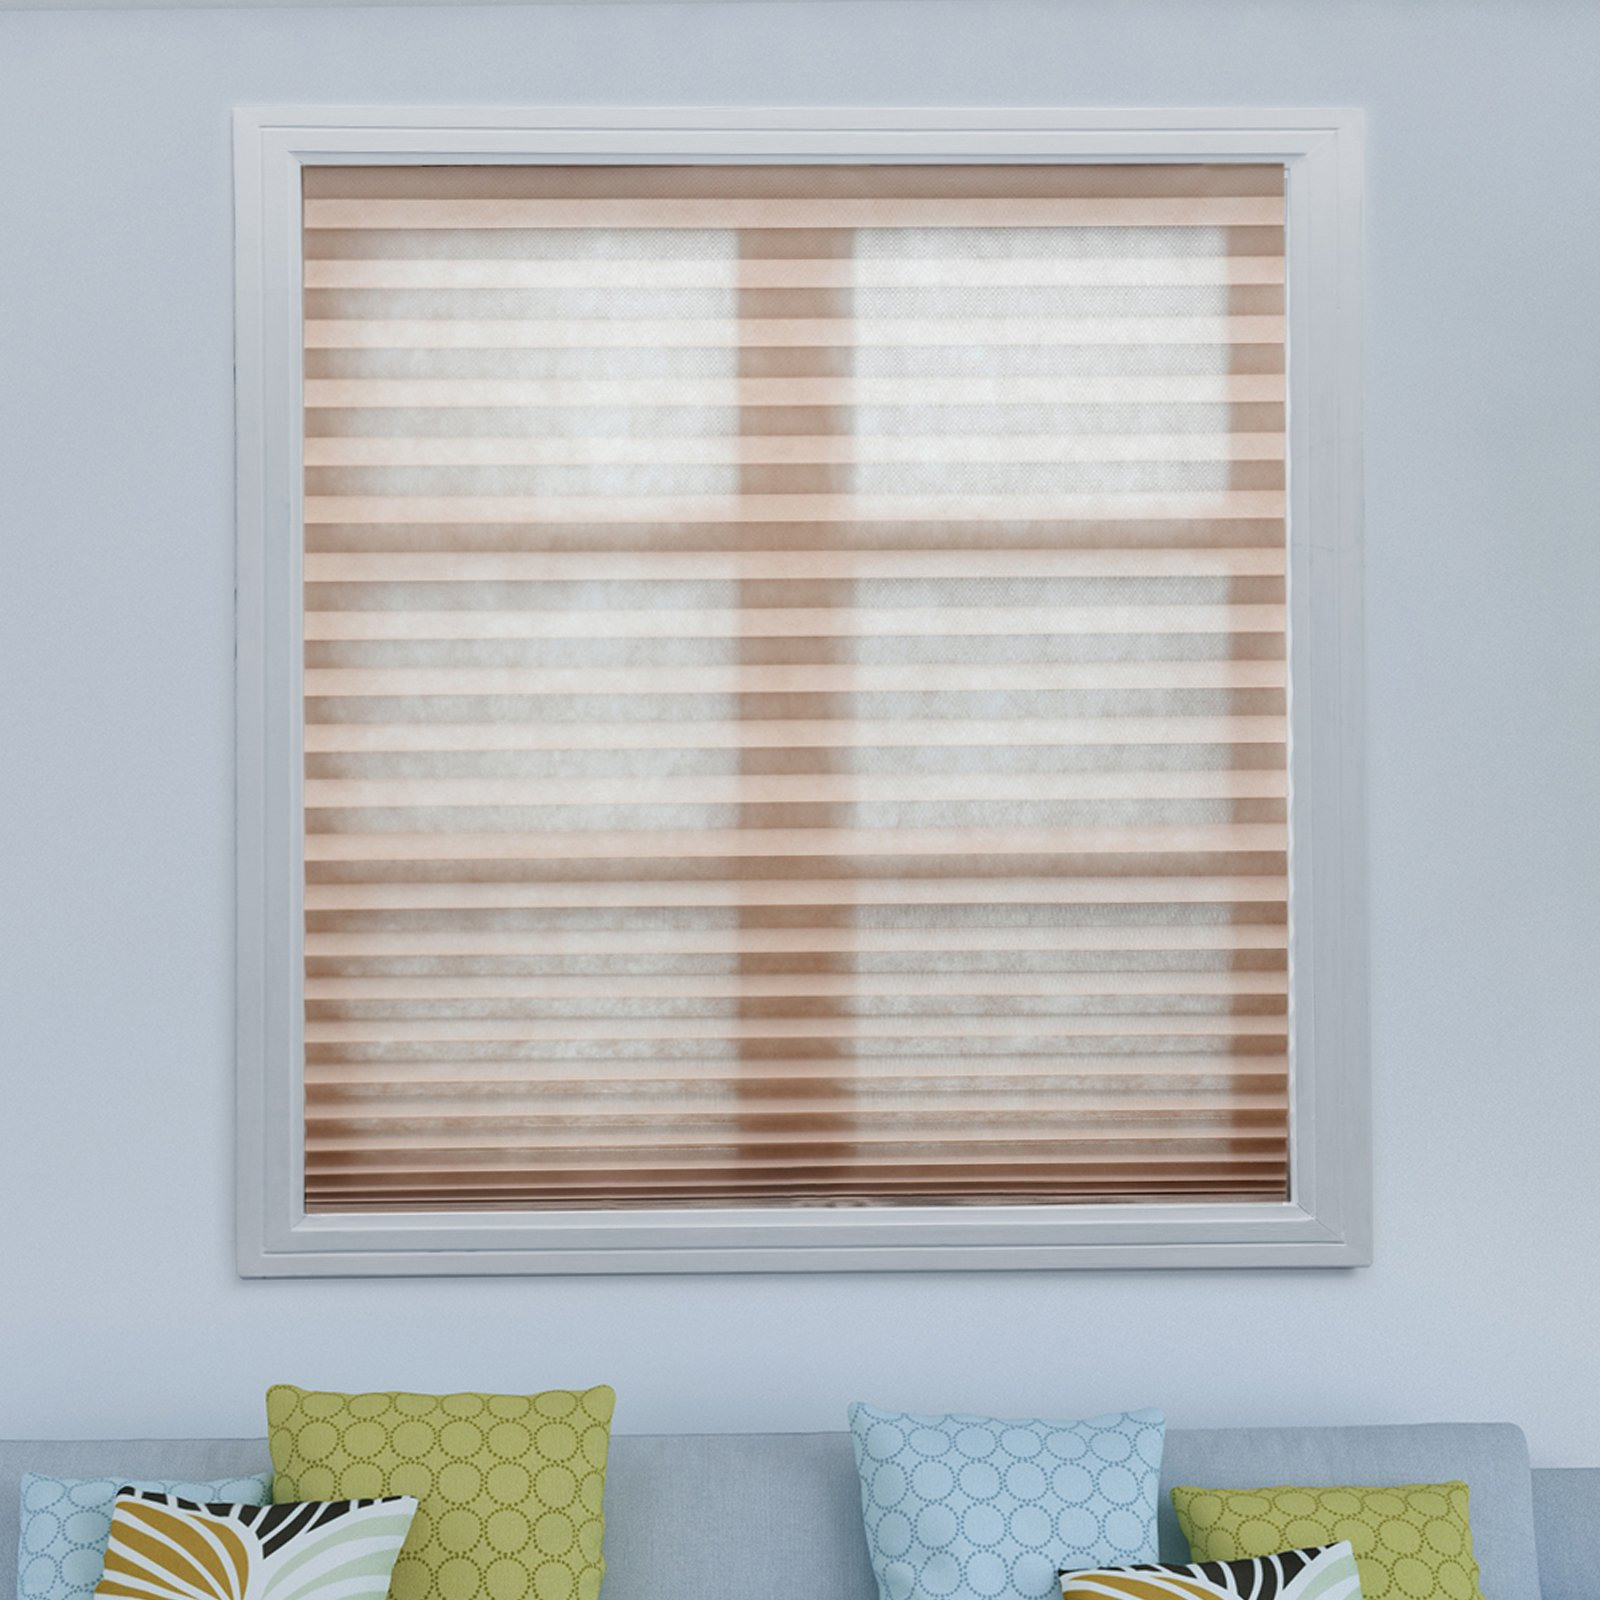 3 Pack Brown Light Filtering Pleated Fabric Shades Blinds For Windows Easy to Install Trim-at-Home 36''x72''